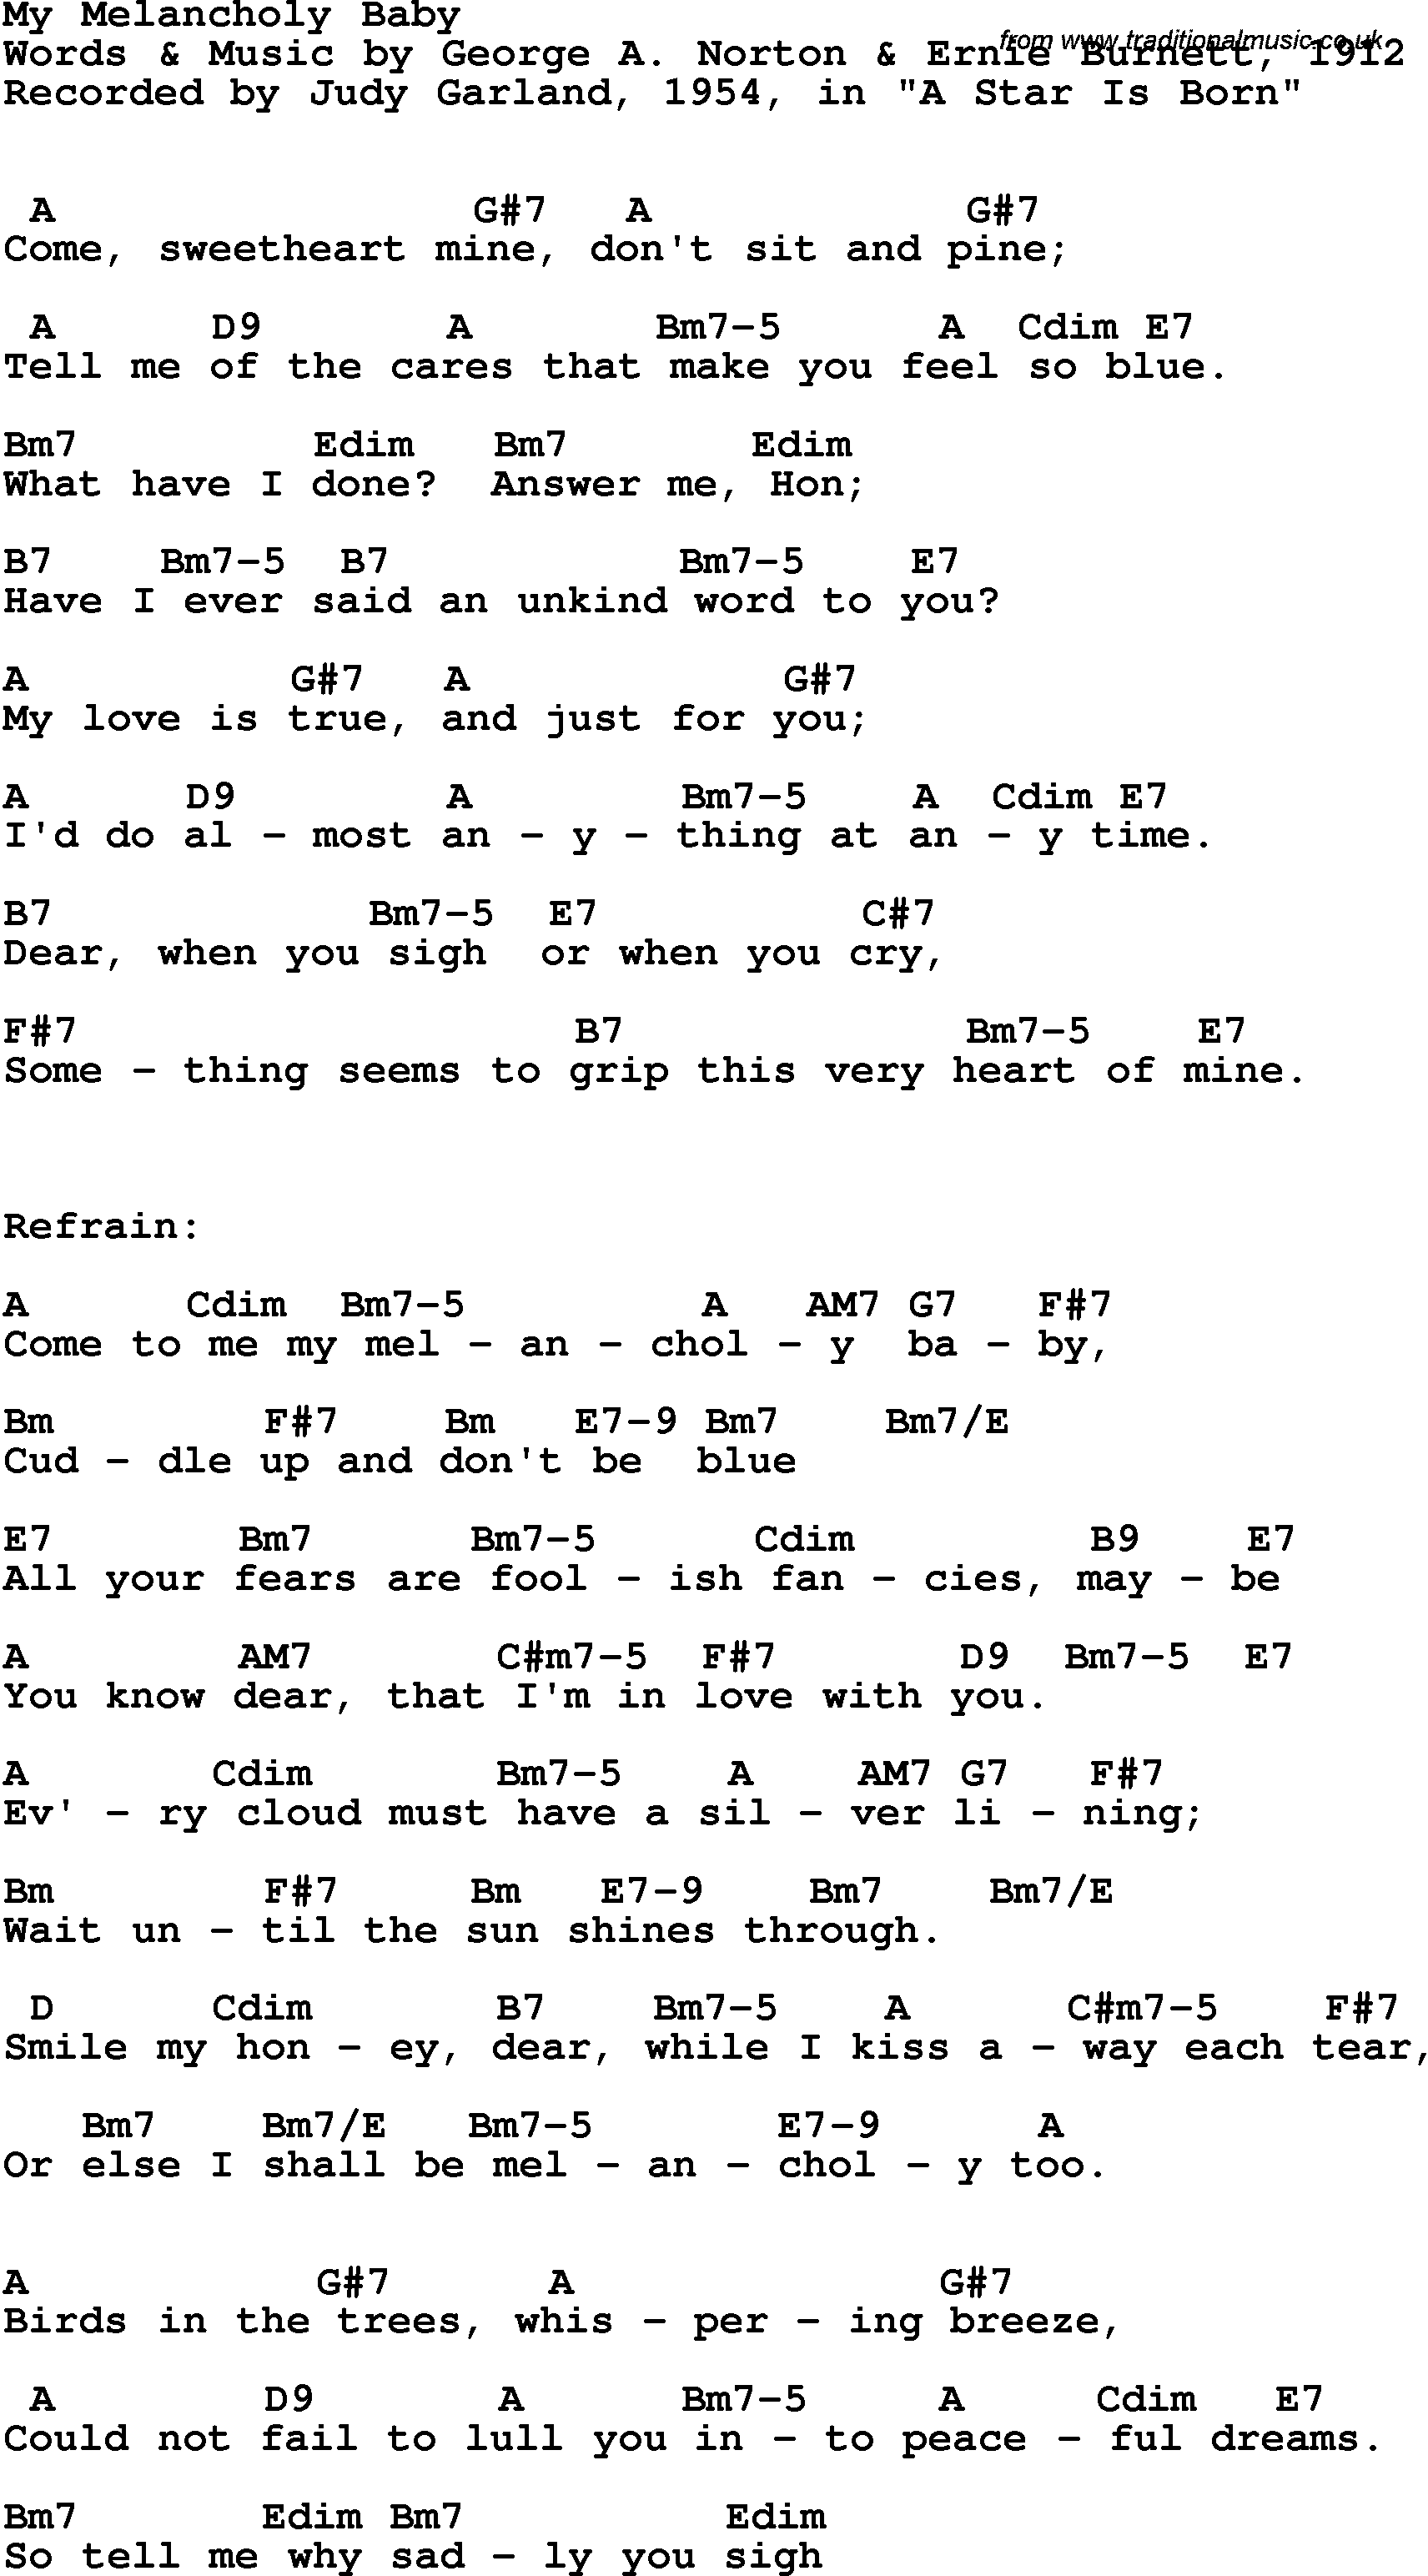 Song Lyrics With Guitar Chords For My Melancholy Baby Judy Garland